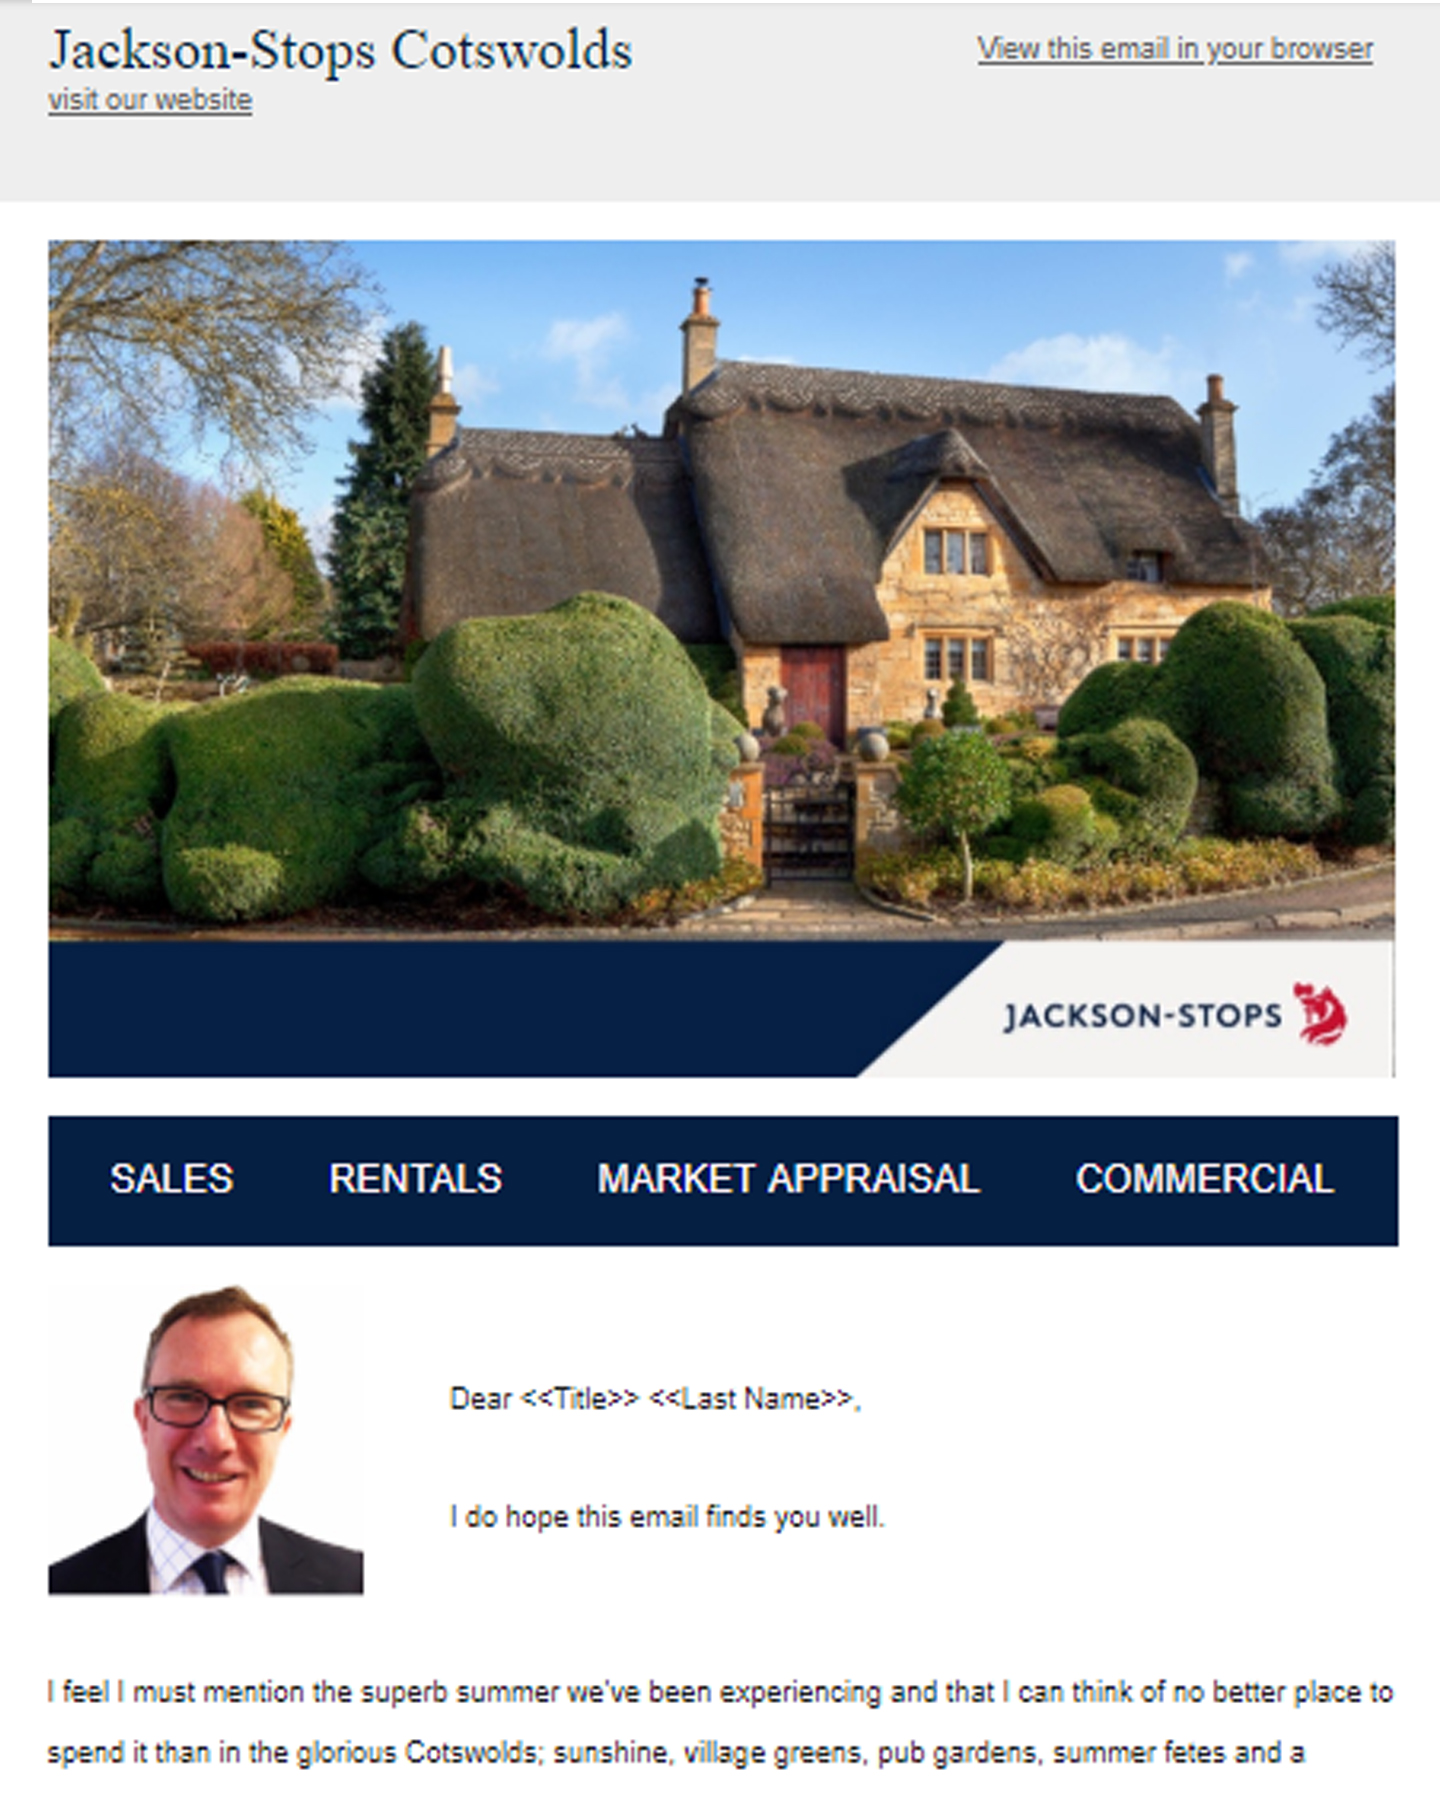 We plan, design, execute and analyse a newsletter campaign for Jackson-Stops estate agents, Cotswolds.